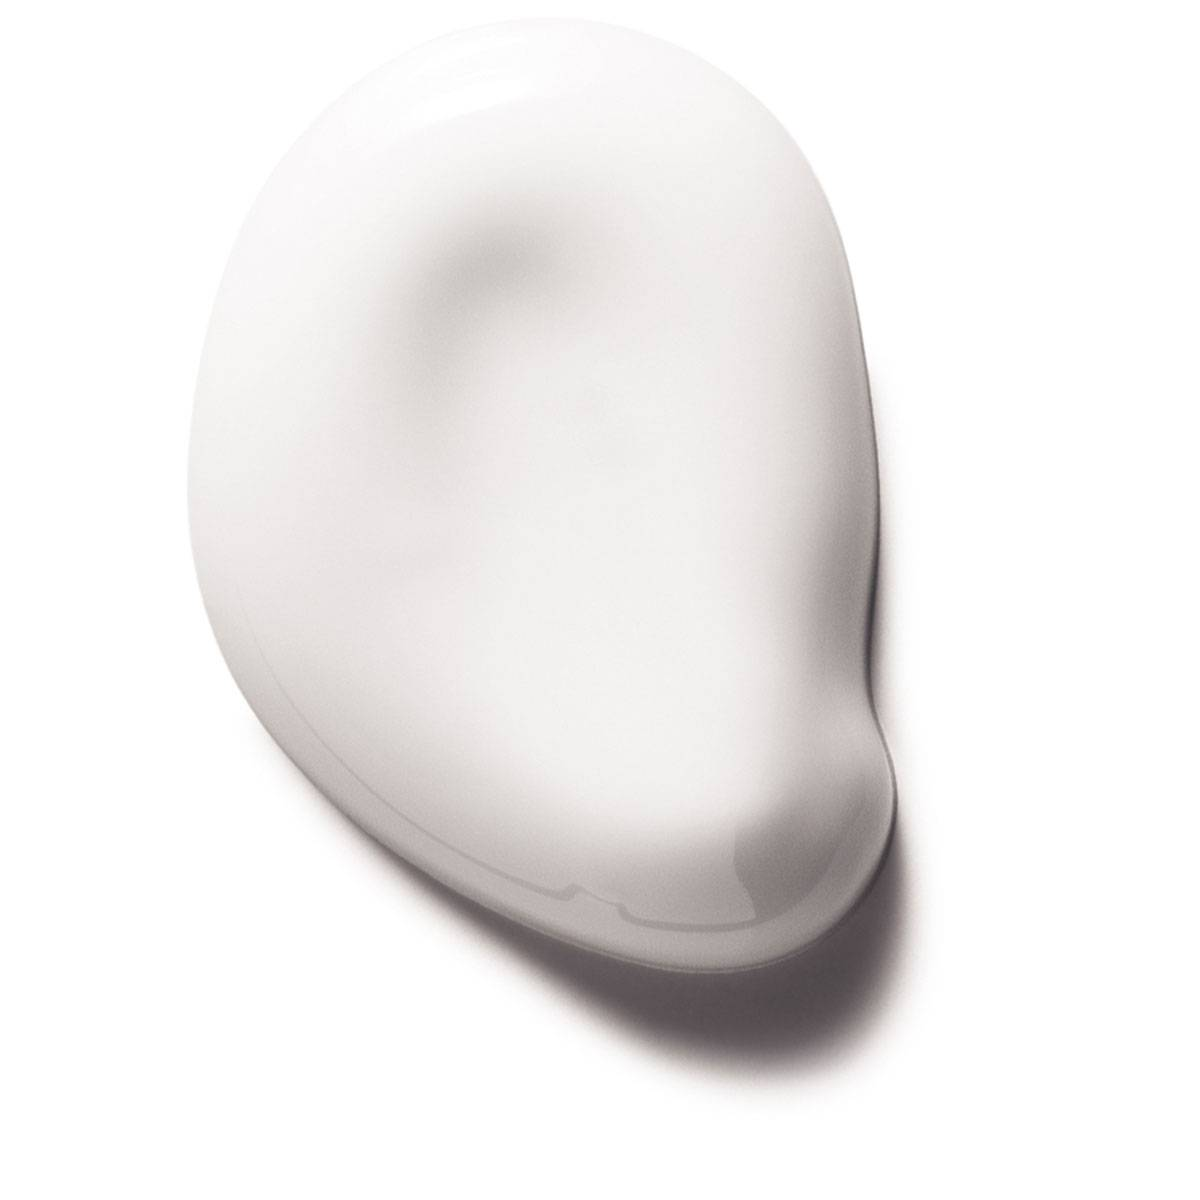 La Roche Posay ProductPage Hydraphase Rich Texture